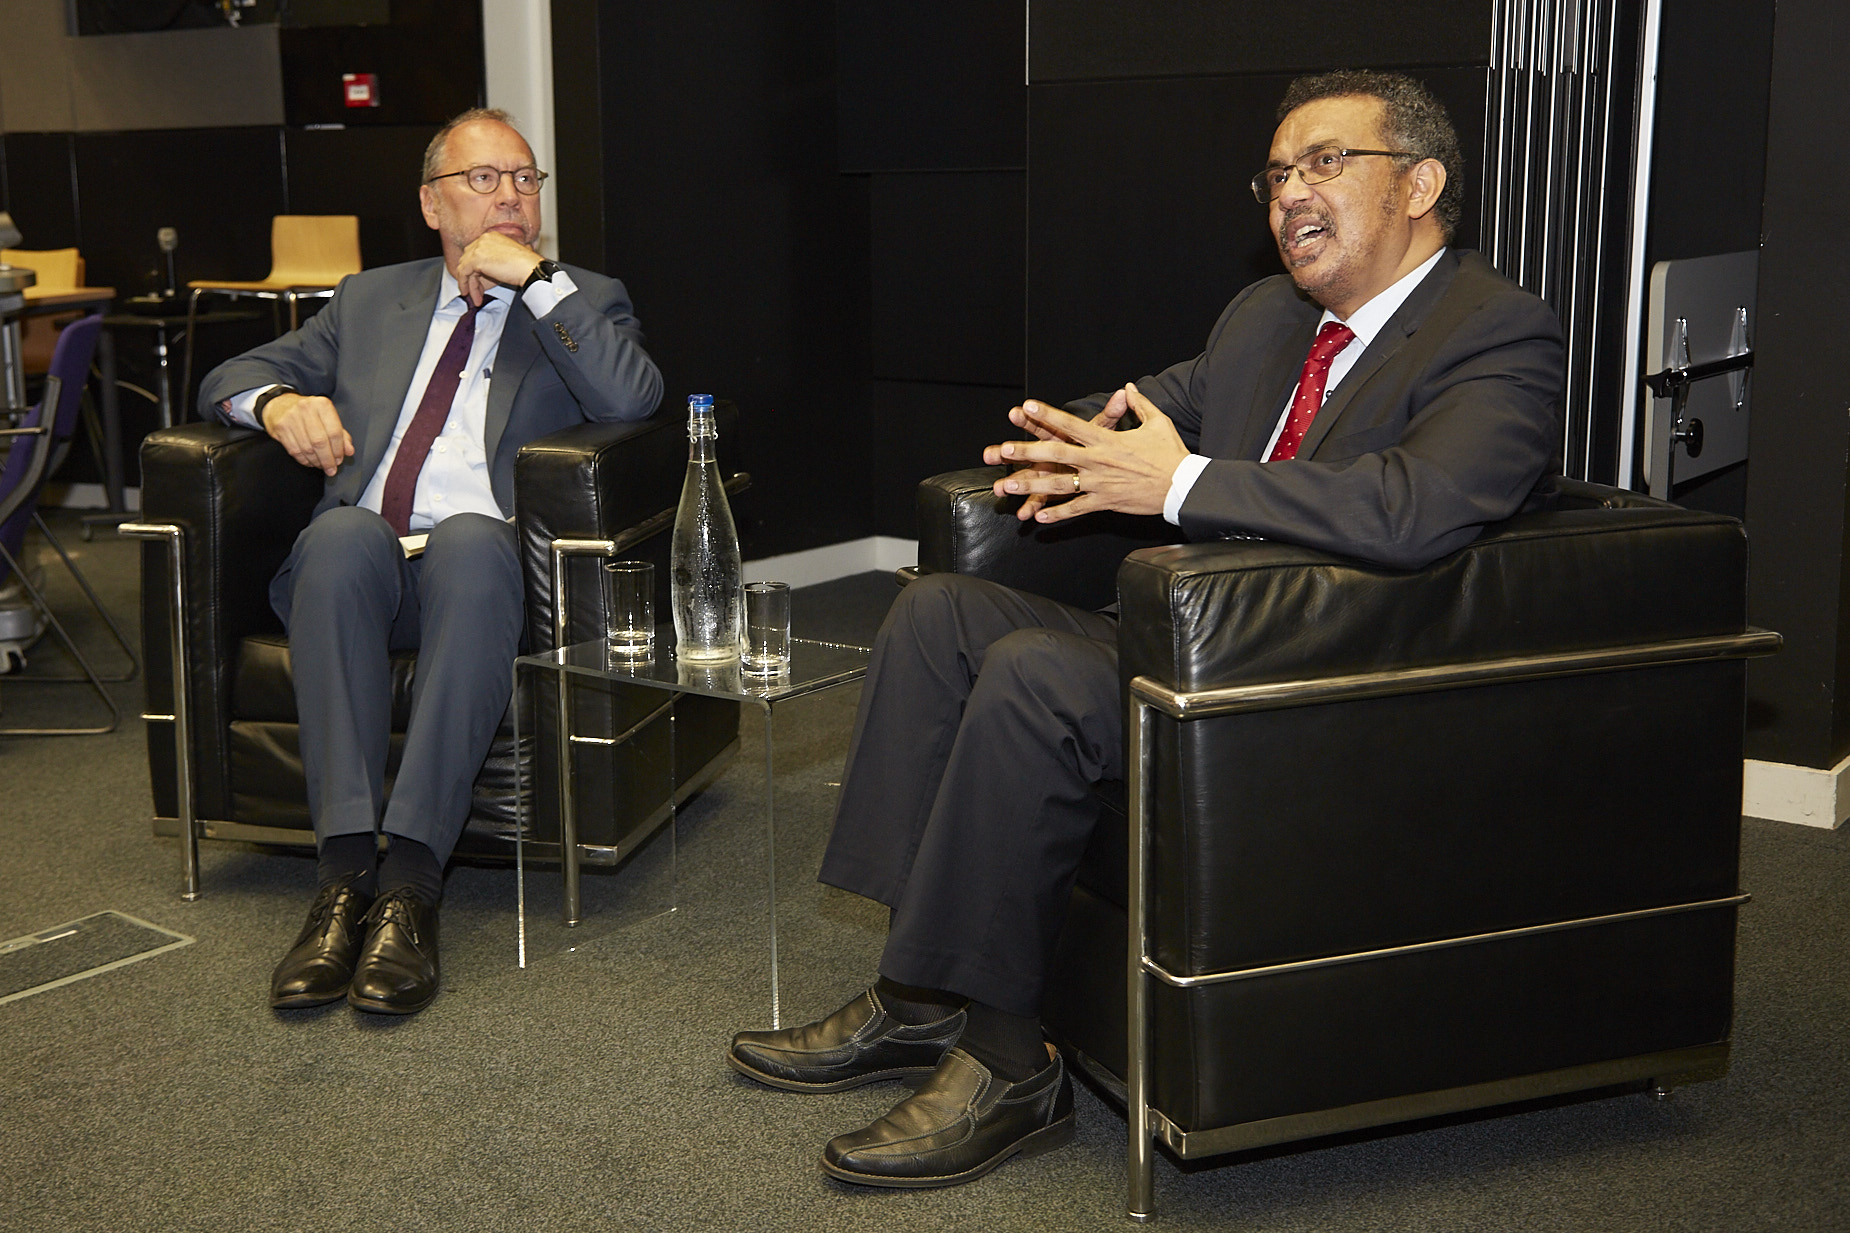 Professor Peter Piot and Dr Tedros